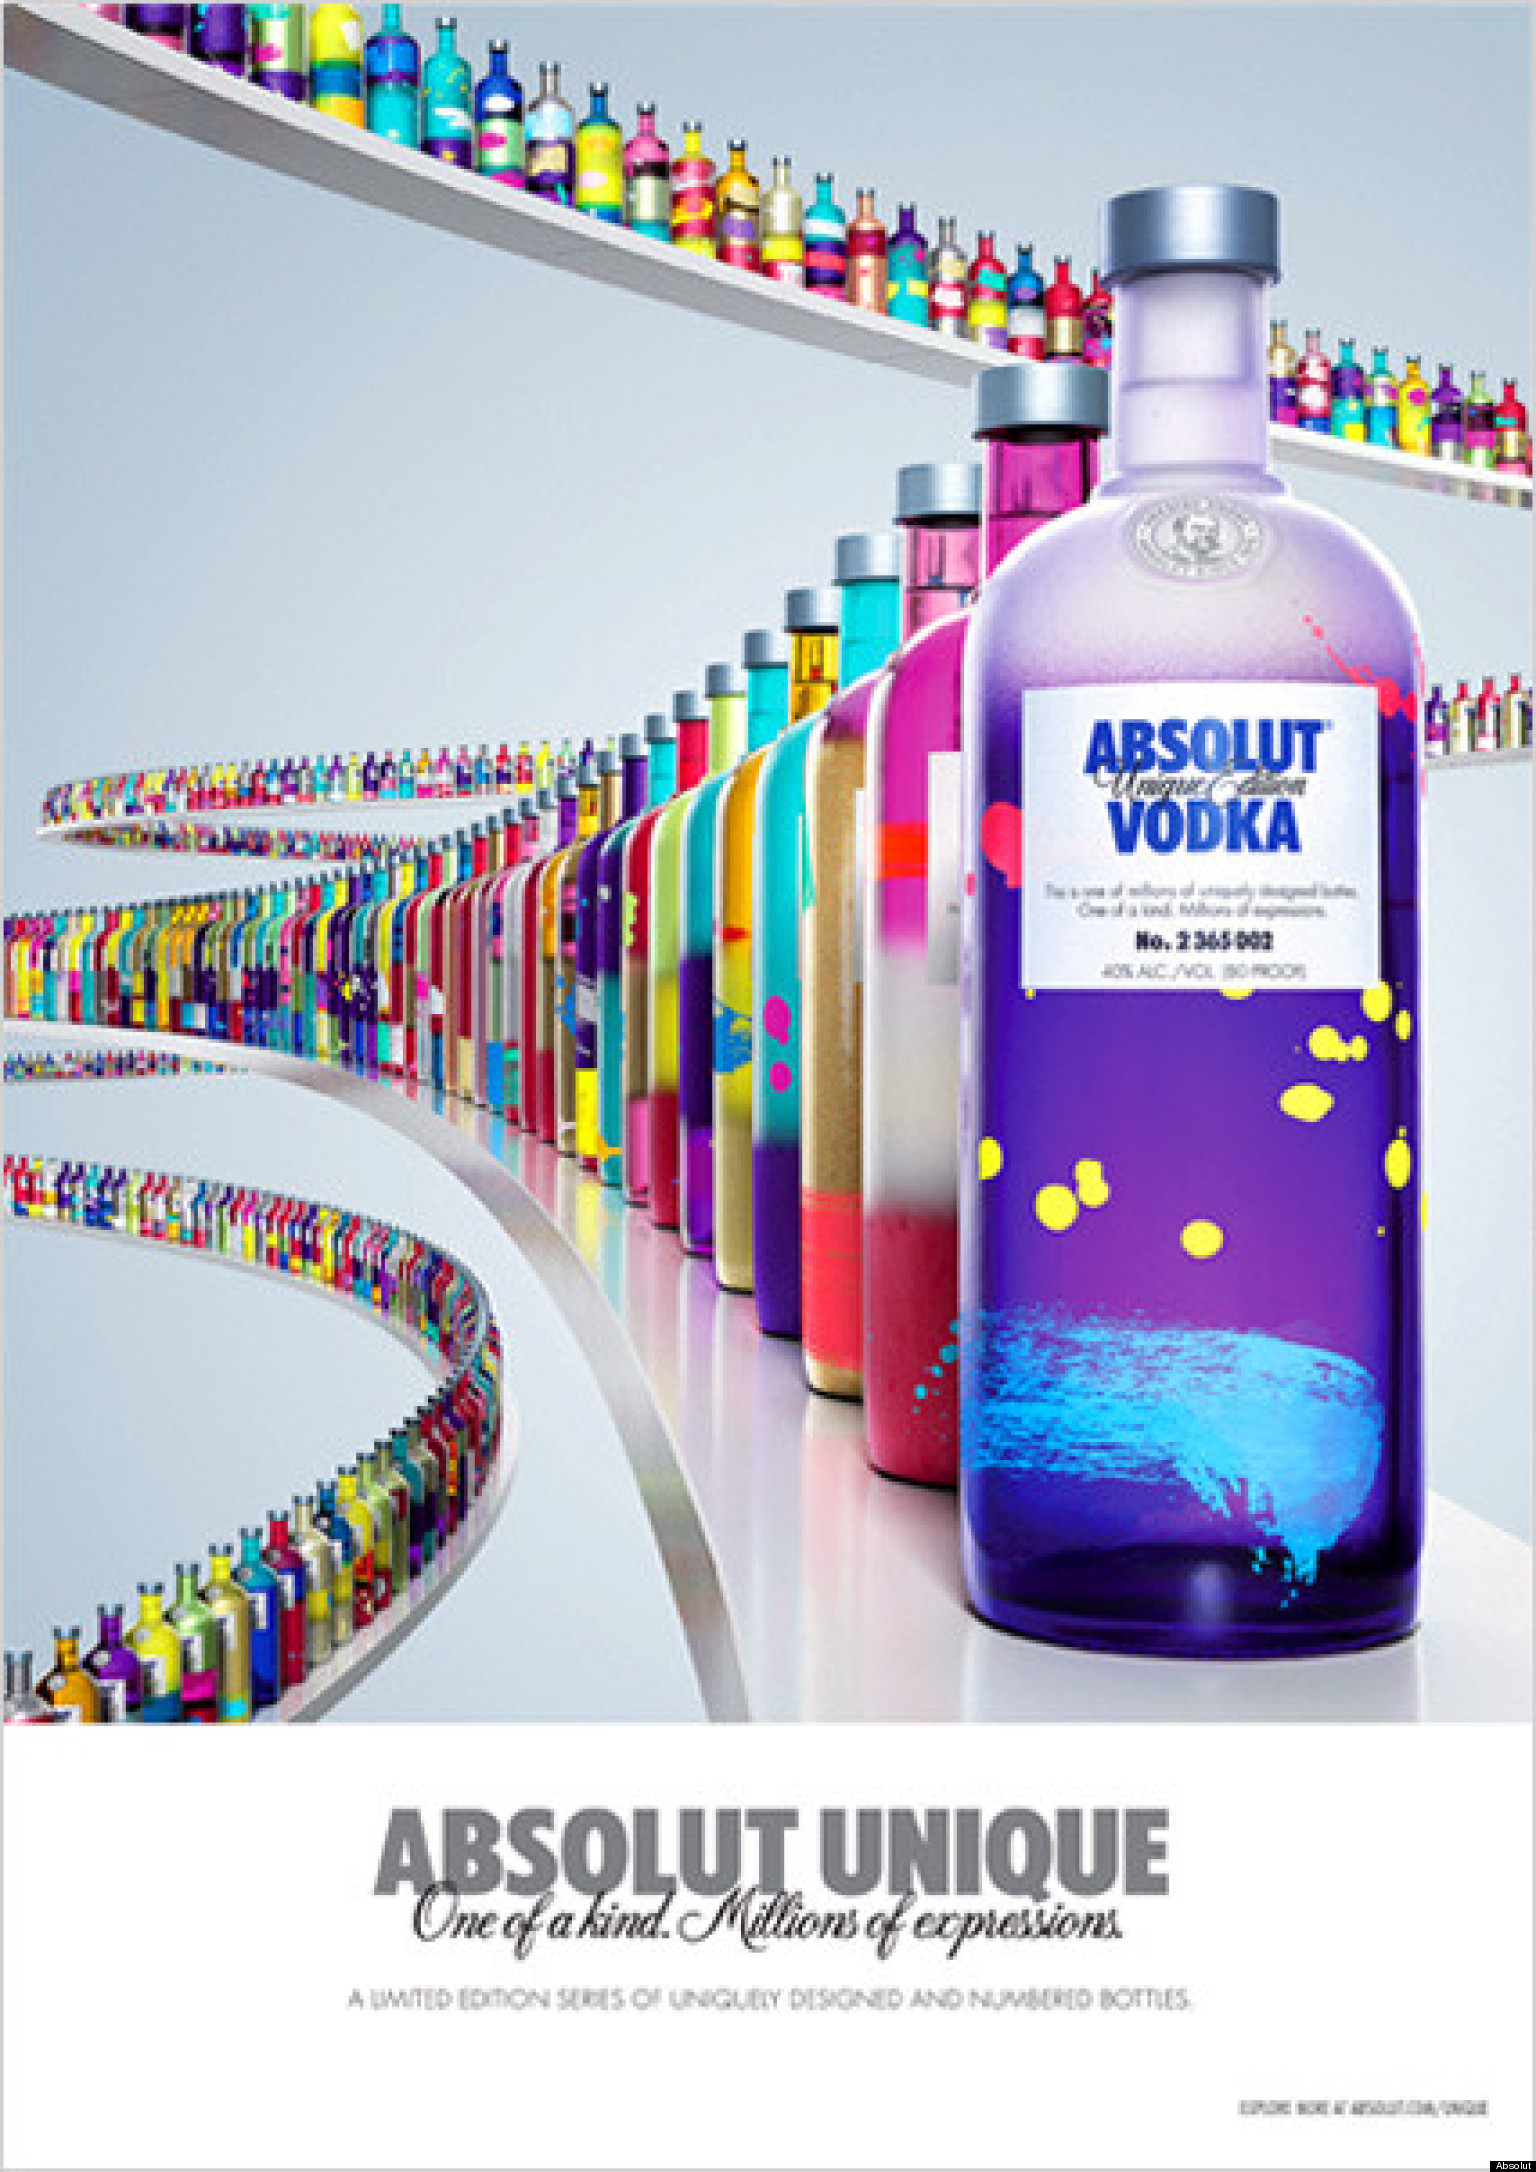 Absolut Vodka's 'Unique': Company Releases 4 Million One-Of